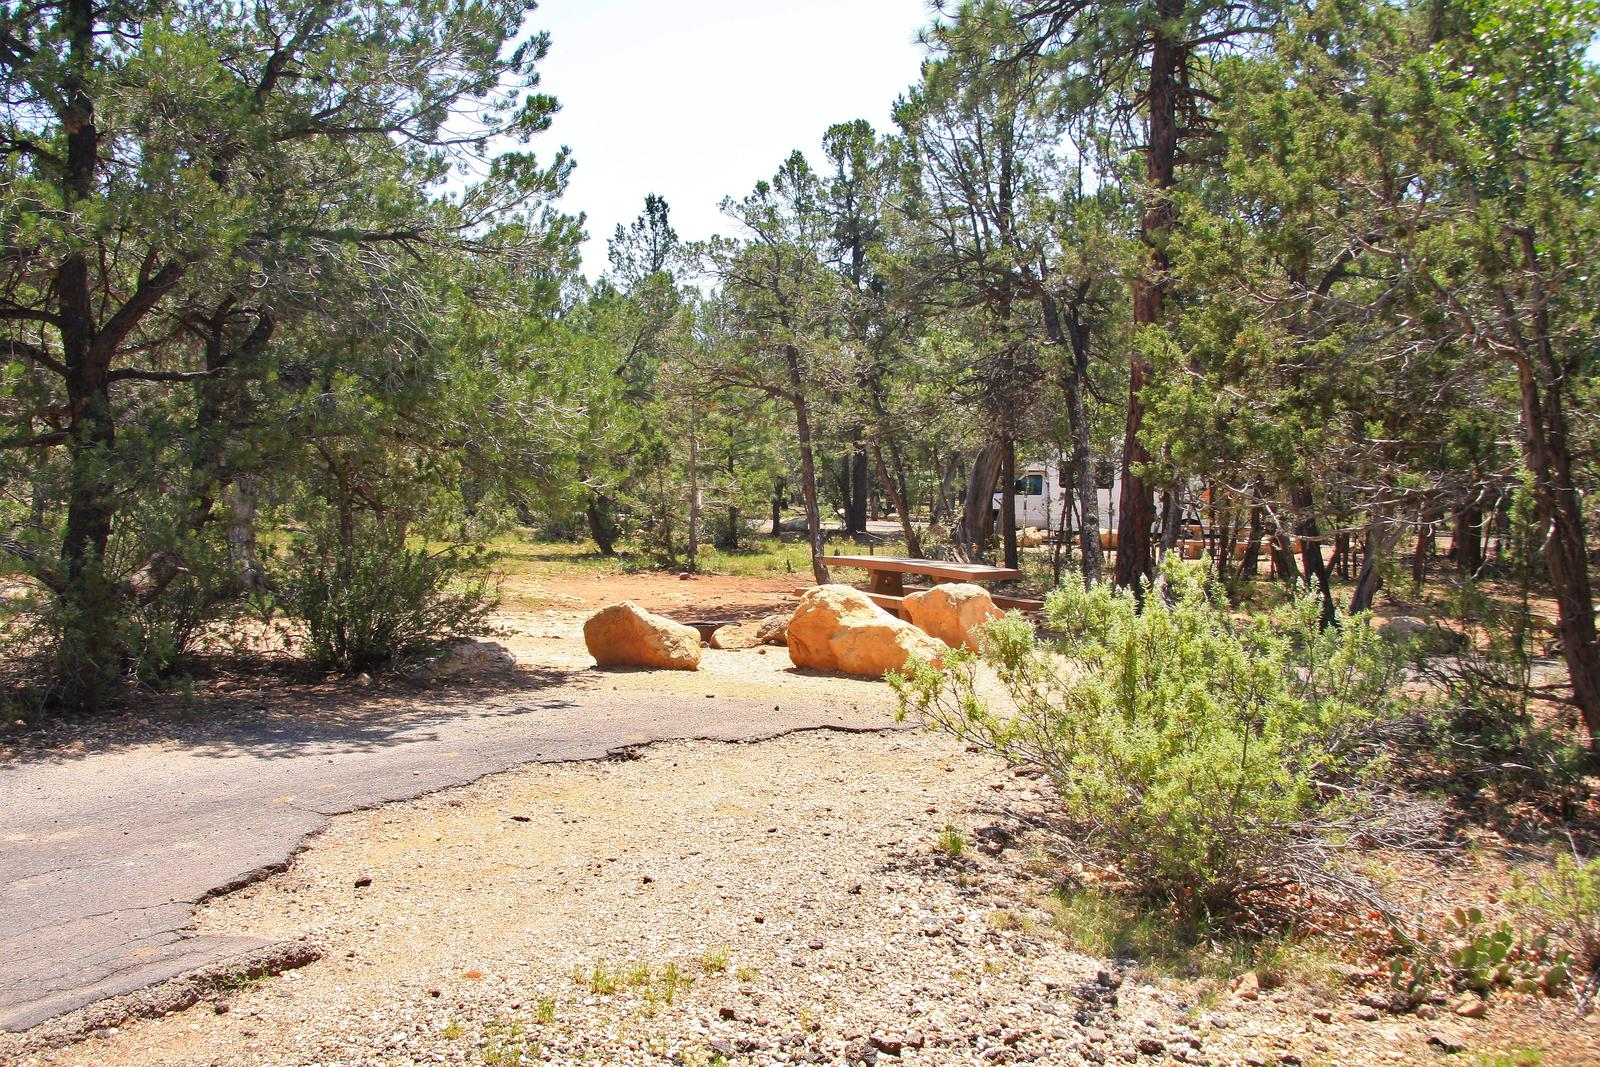 Picnic table, fire pit, and parking spot, Mather CampgroundPicnic table, fire pit, and parking spot for Juniper Loop 109, Mather Campground